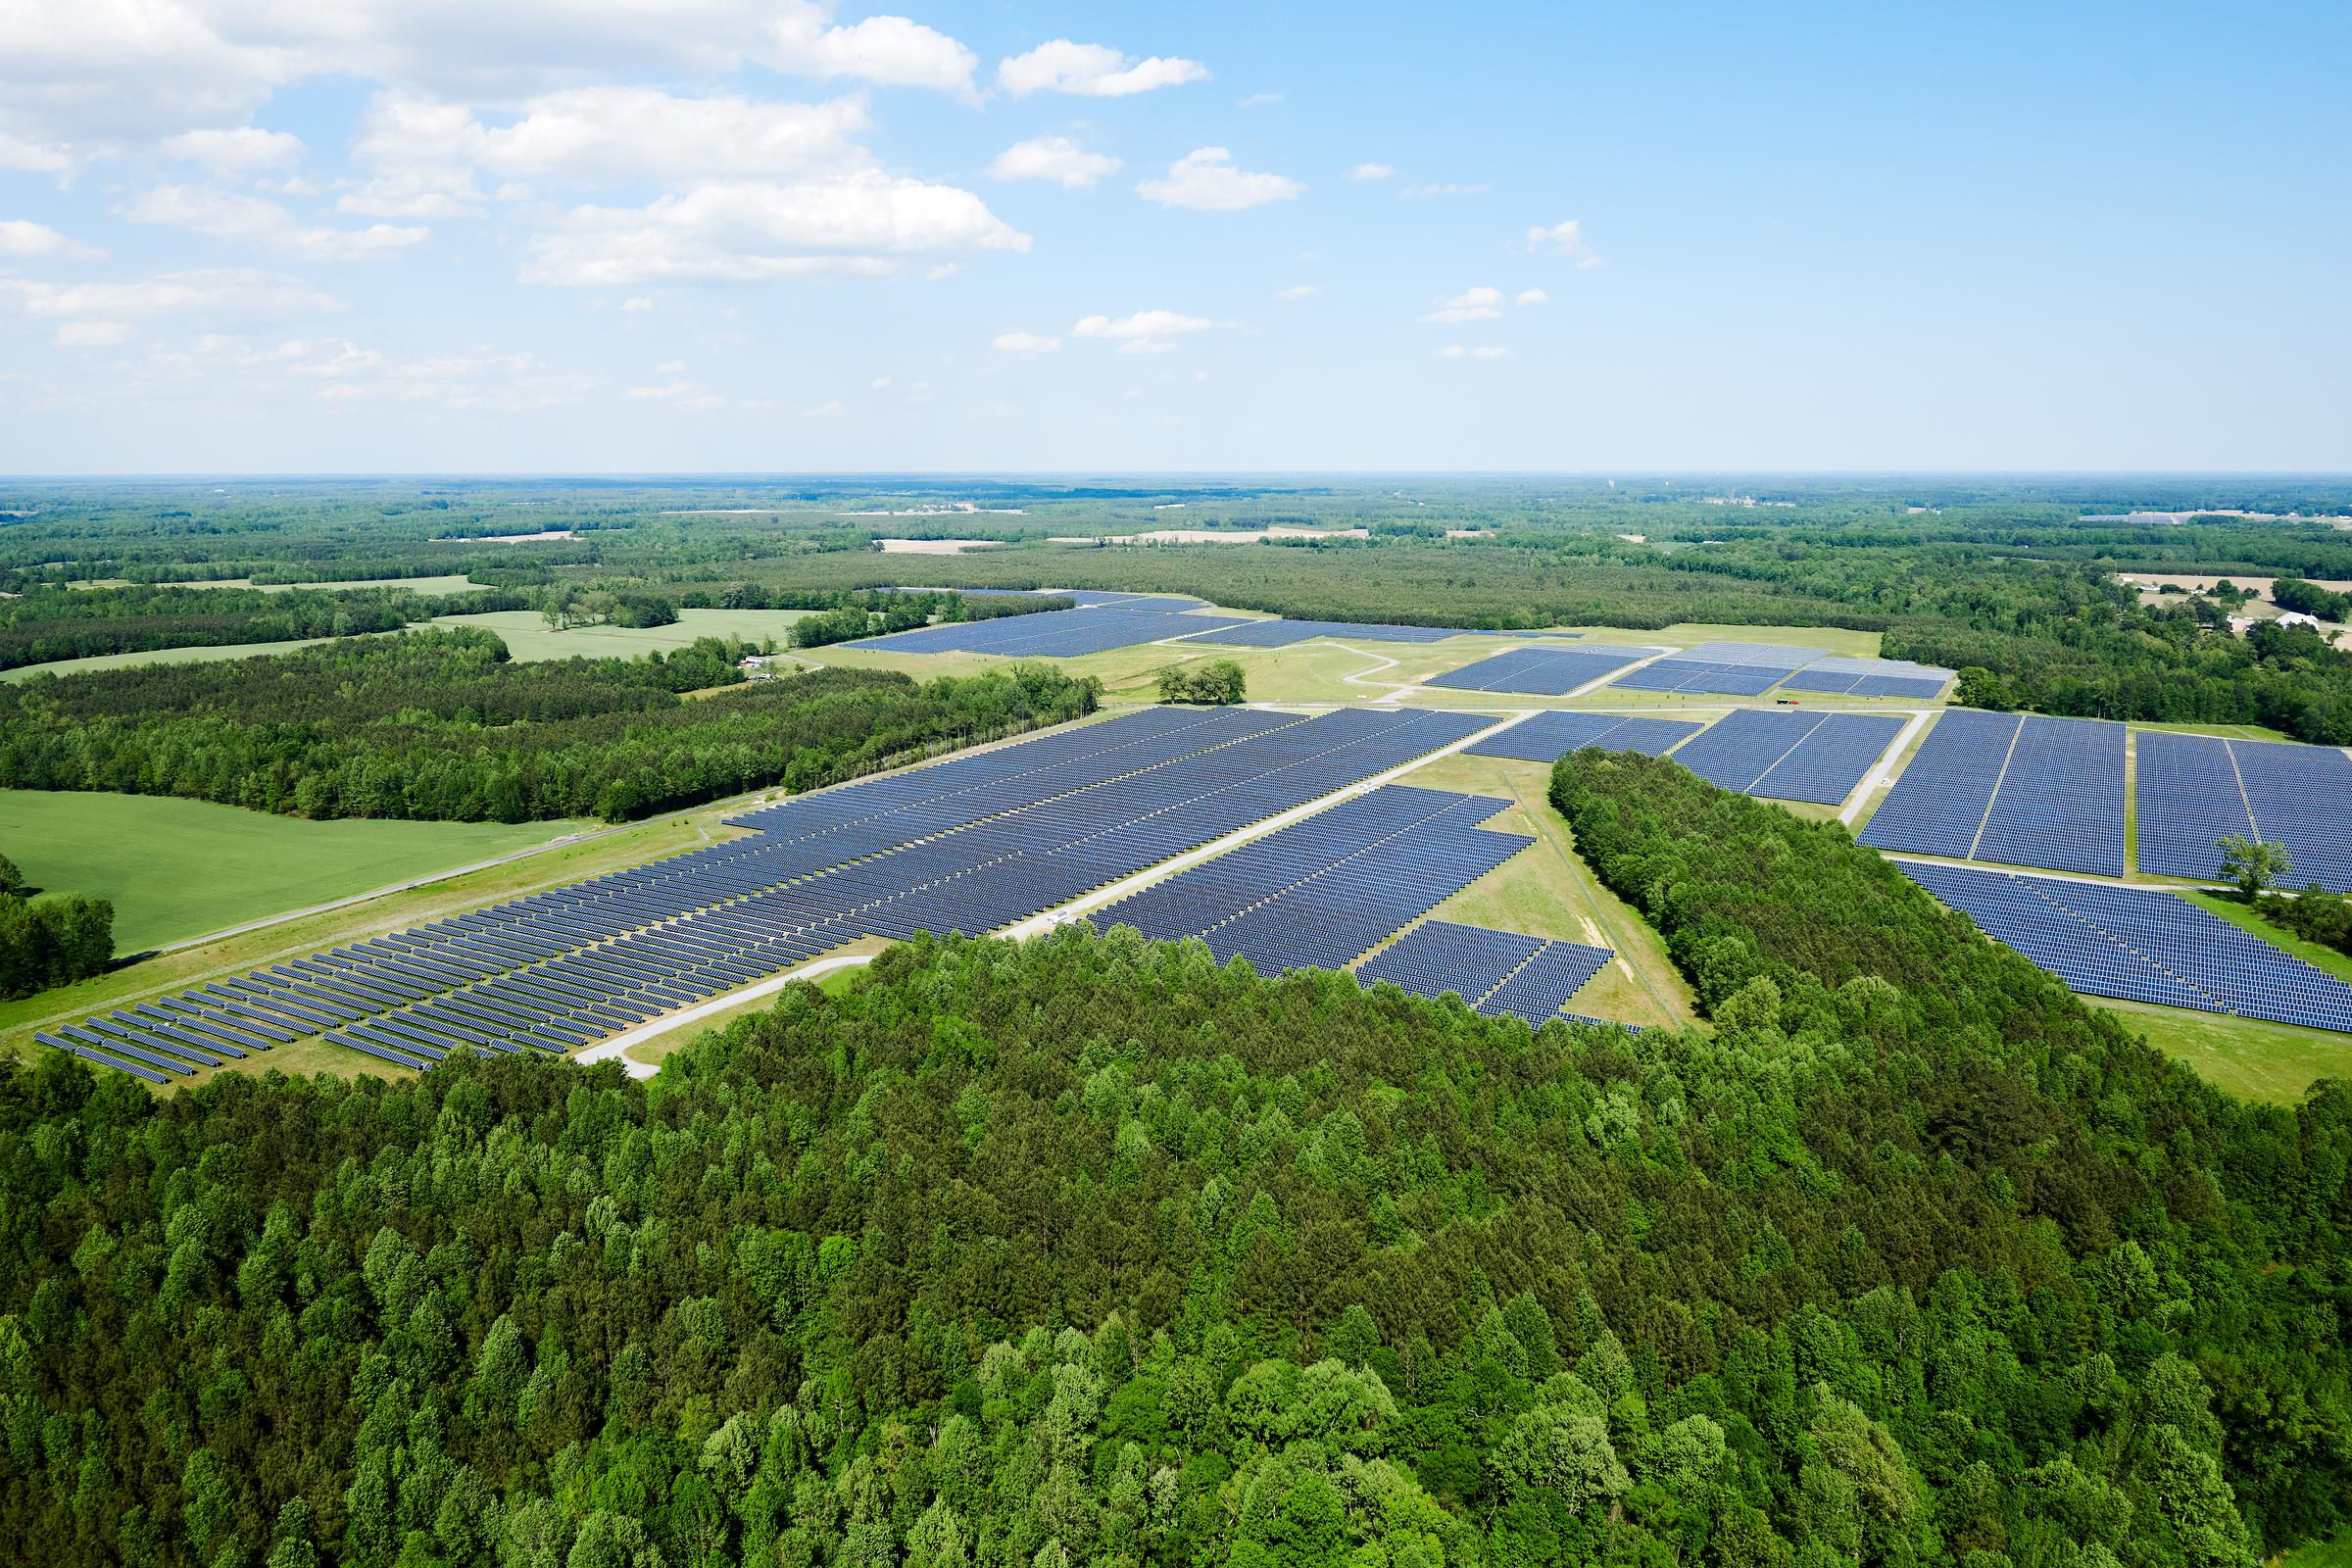 Aerail photograph of Solar Field in Virginia